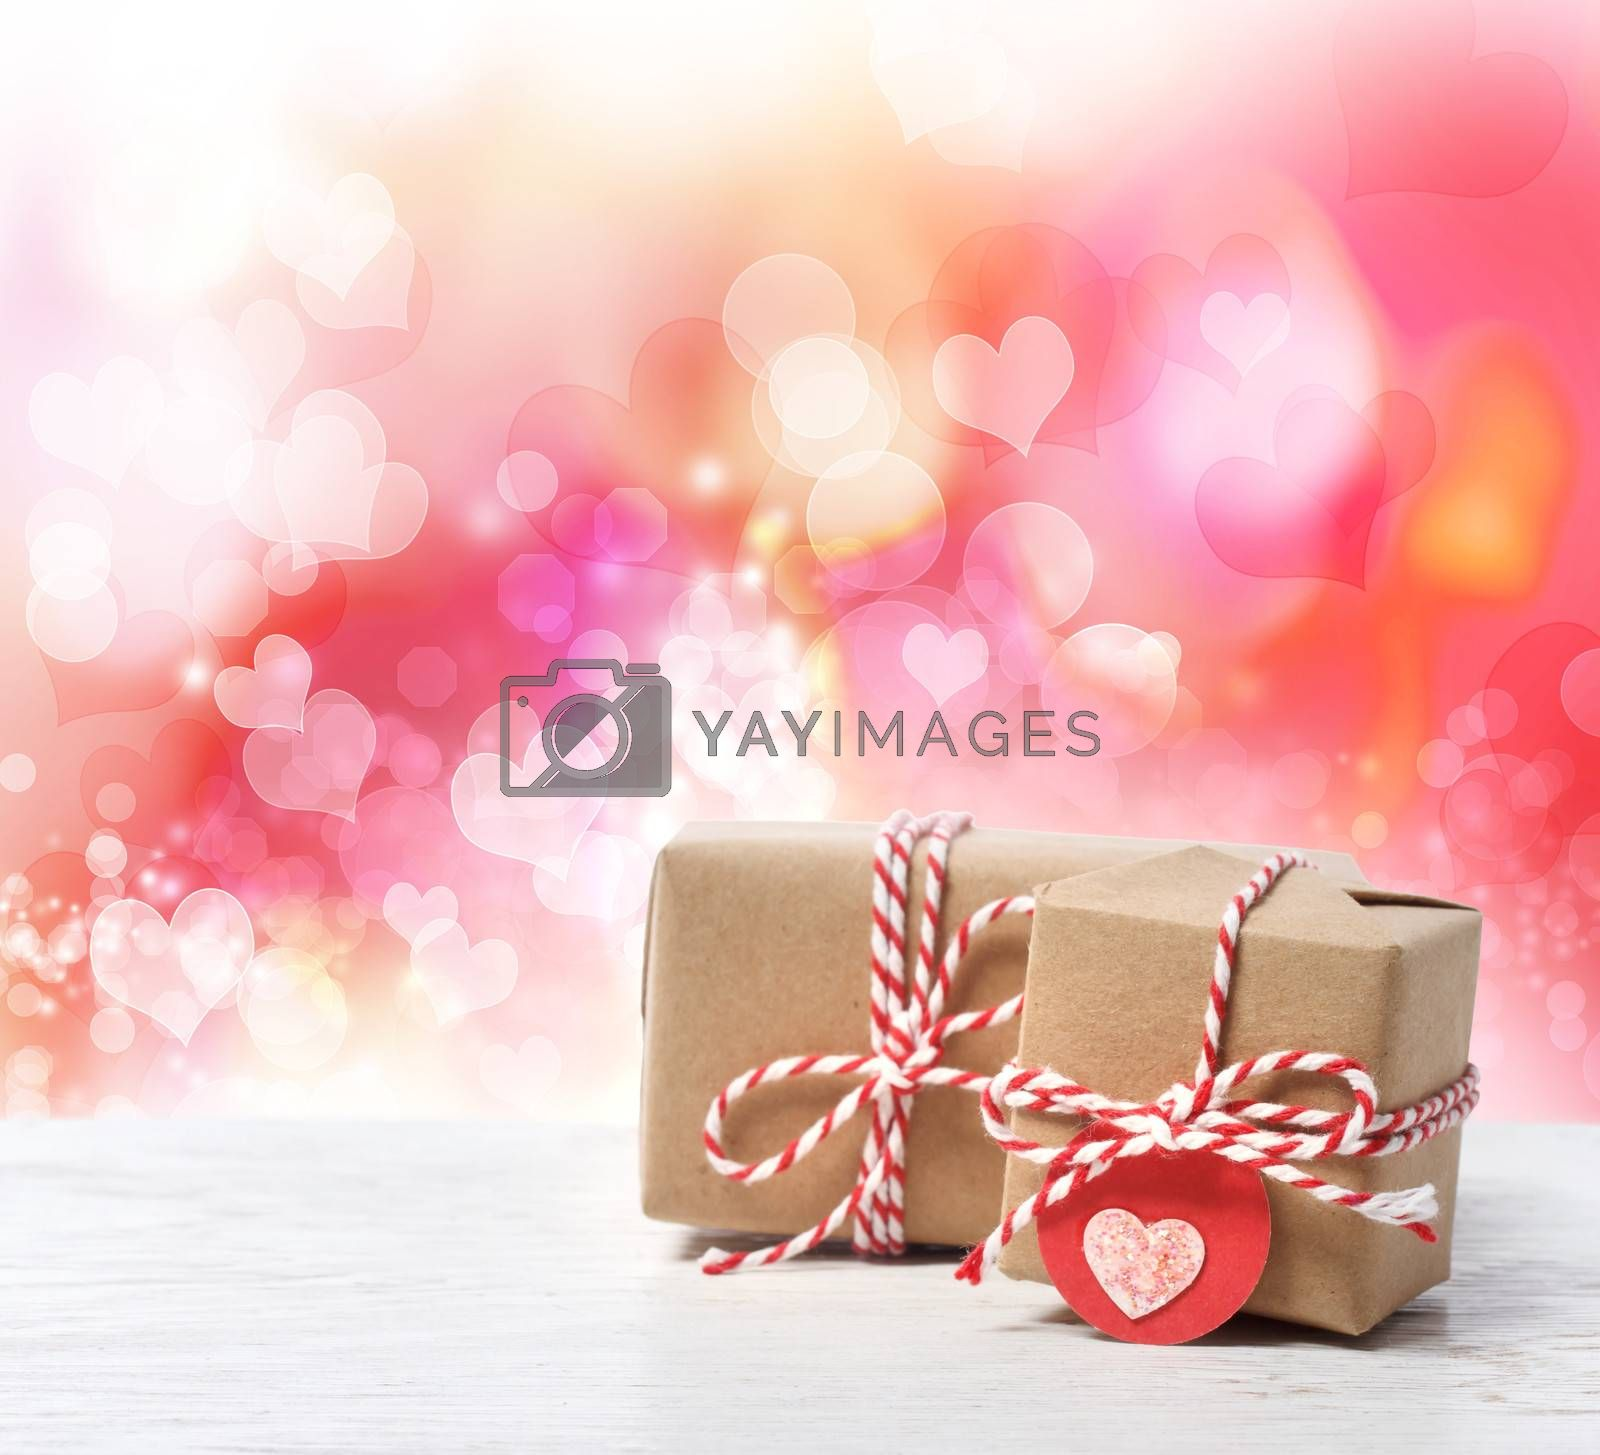 Royalty free image of Small handmade gift boxes by melpomene